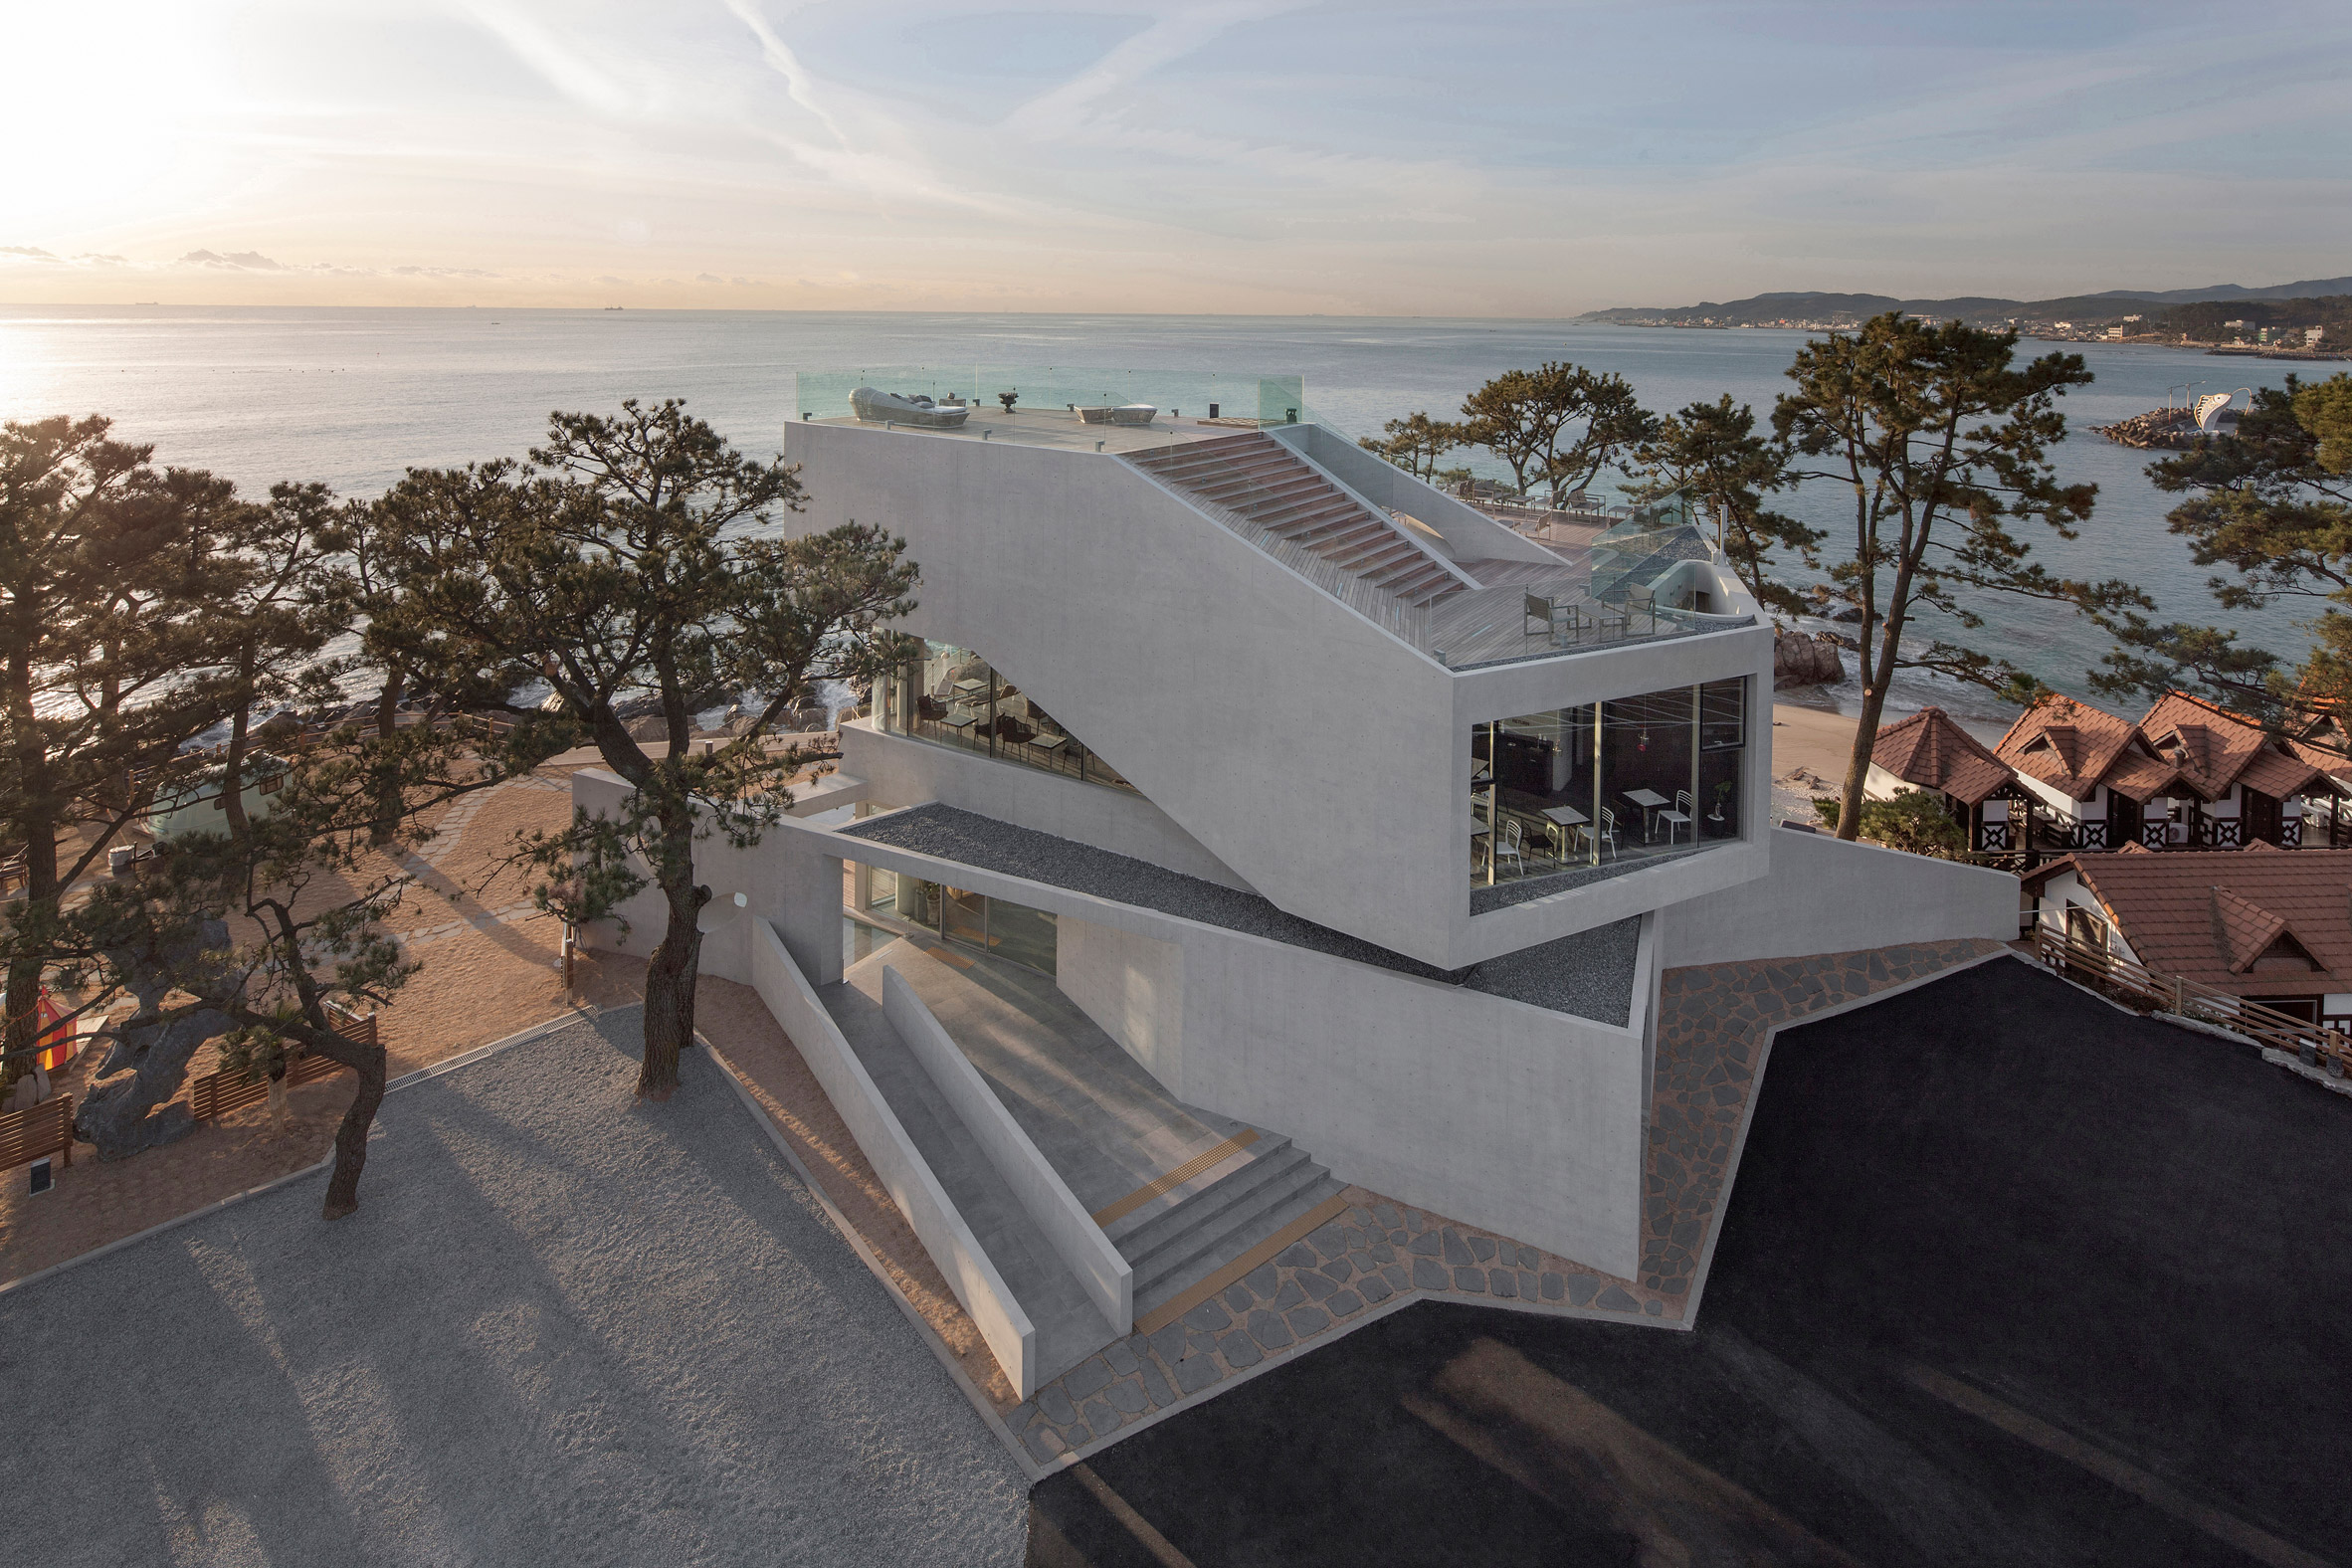 Stacked concrete blocks and roof deck give diners sea views from South Korean cafe by IDMM Architects